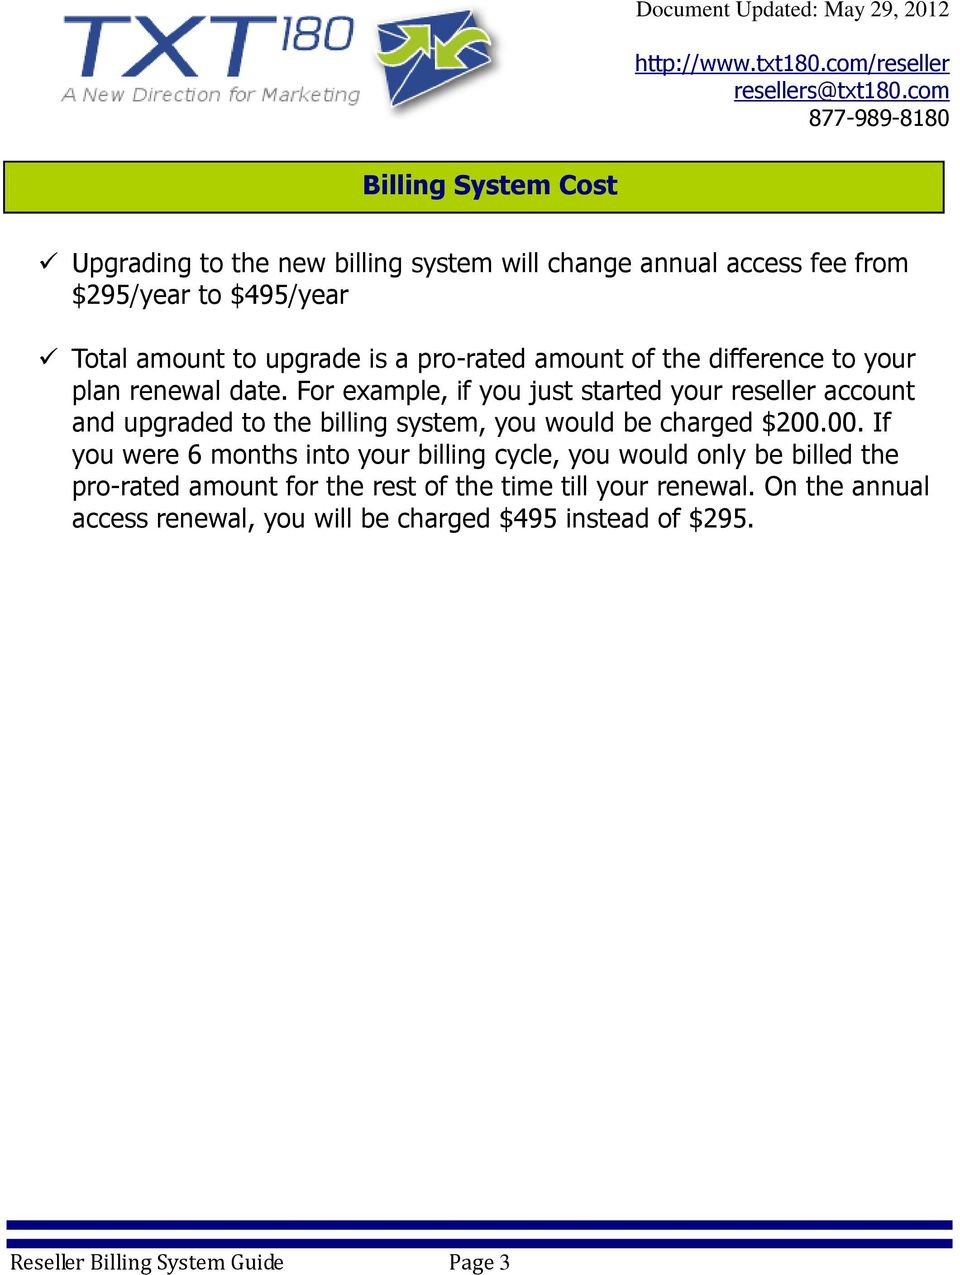 For example, if you just started your reseller account and upgraded to the billing system, you would be charged $200.